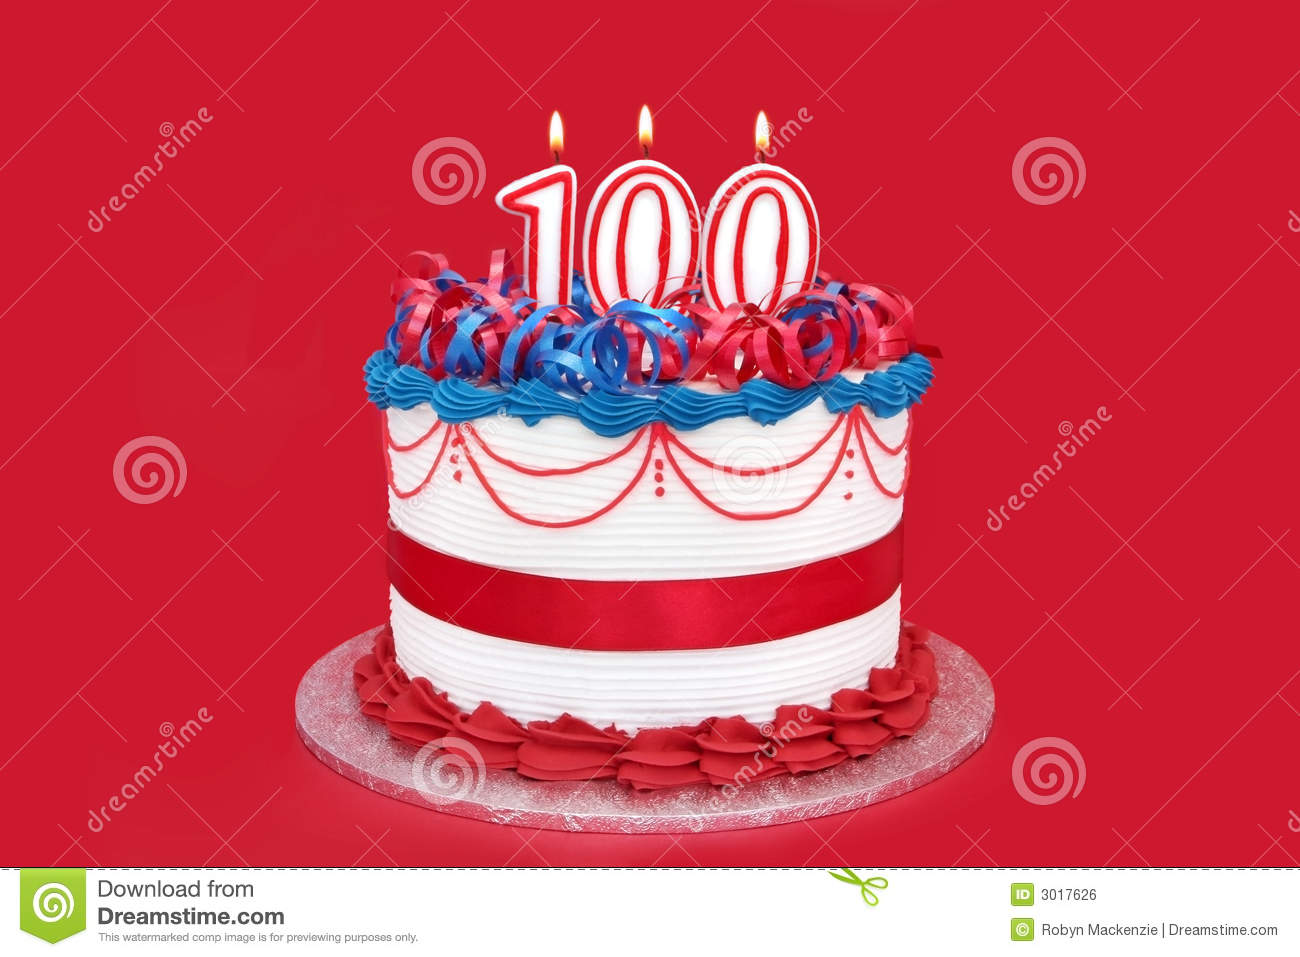 100th Cake With Numeral Candles On Vibrant Red Background